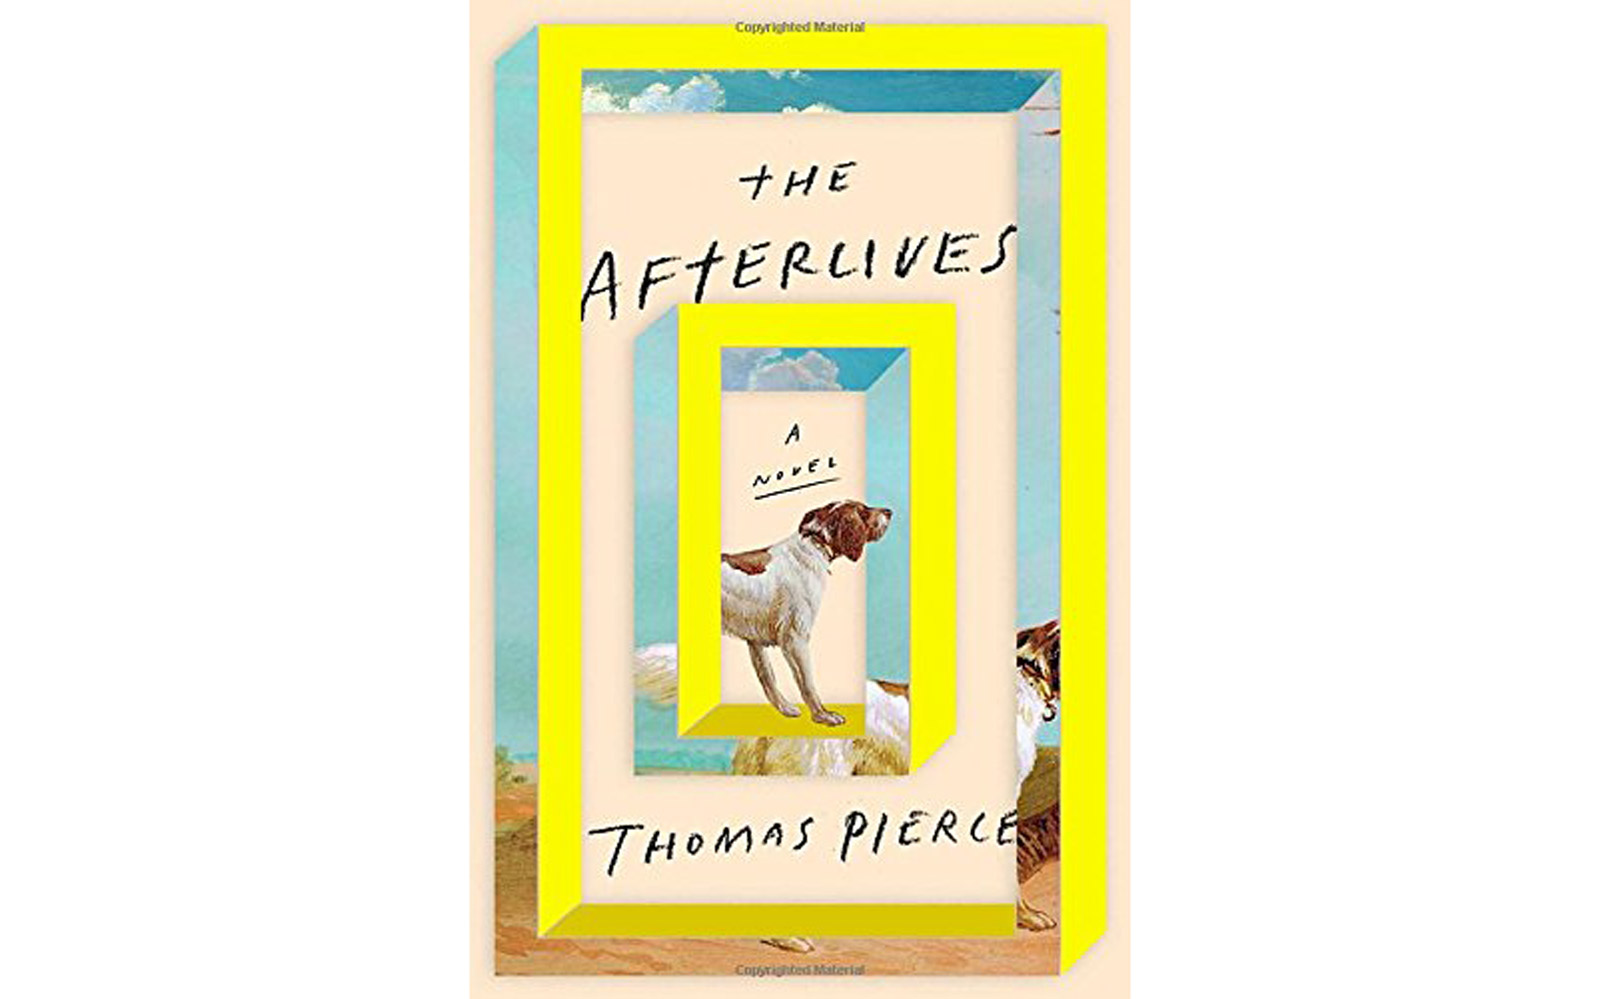 'The Afterlives' by Thomas Pierce